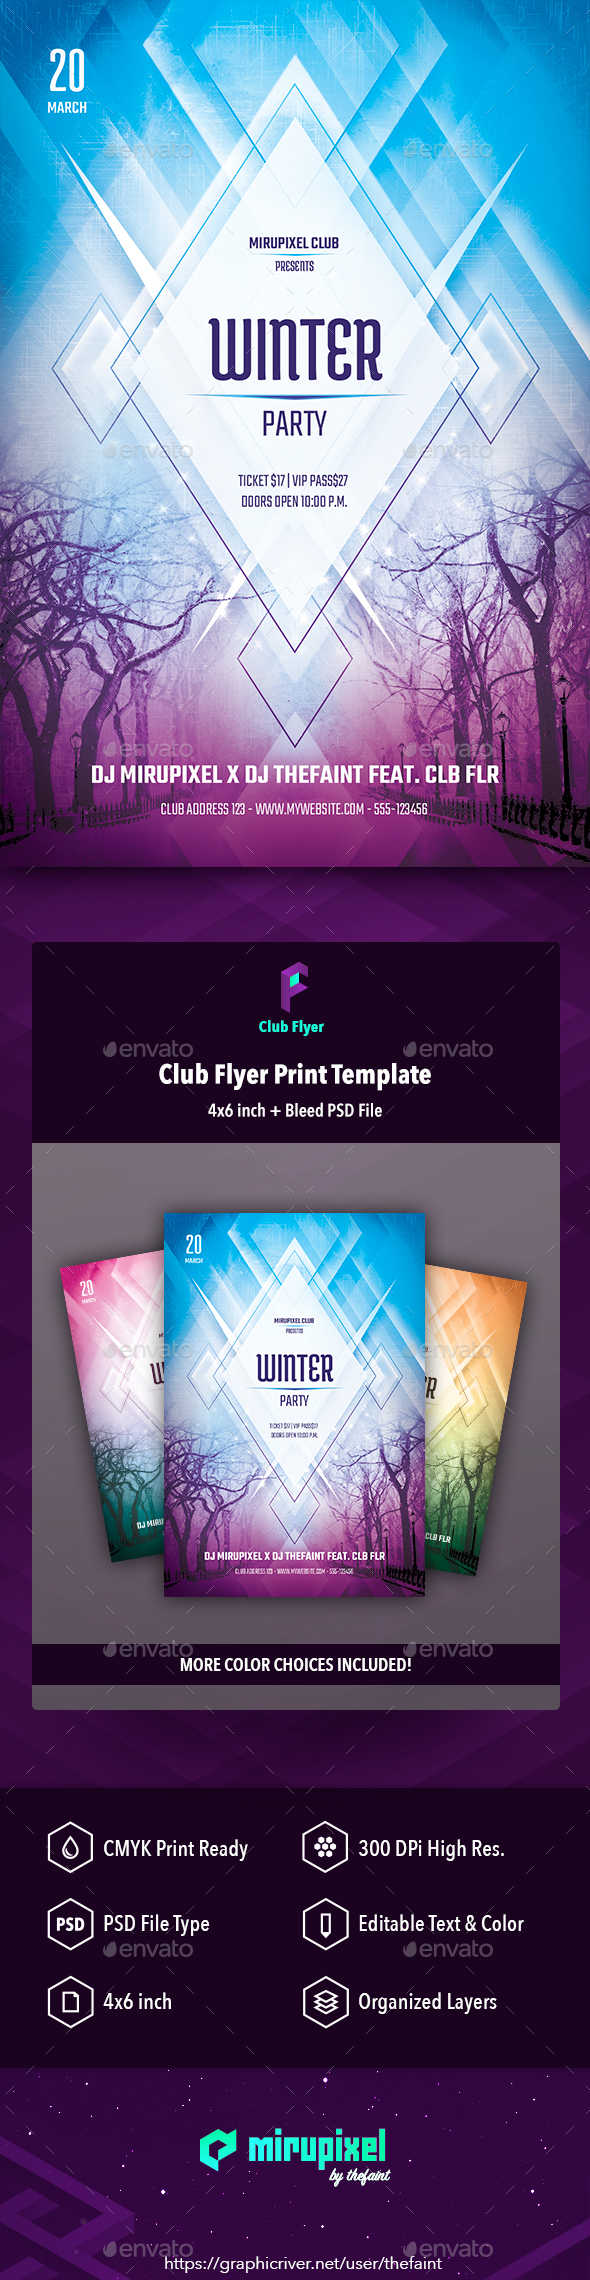 GraphicRiver Club Flyer Winter Party 20918884